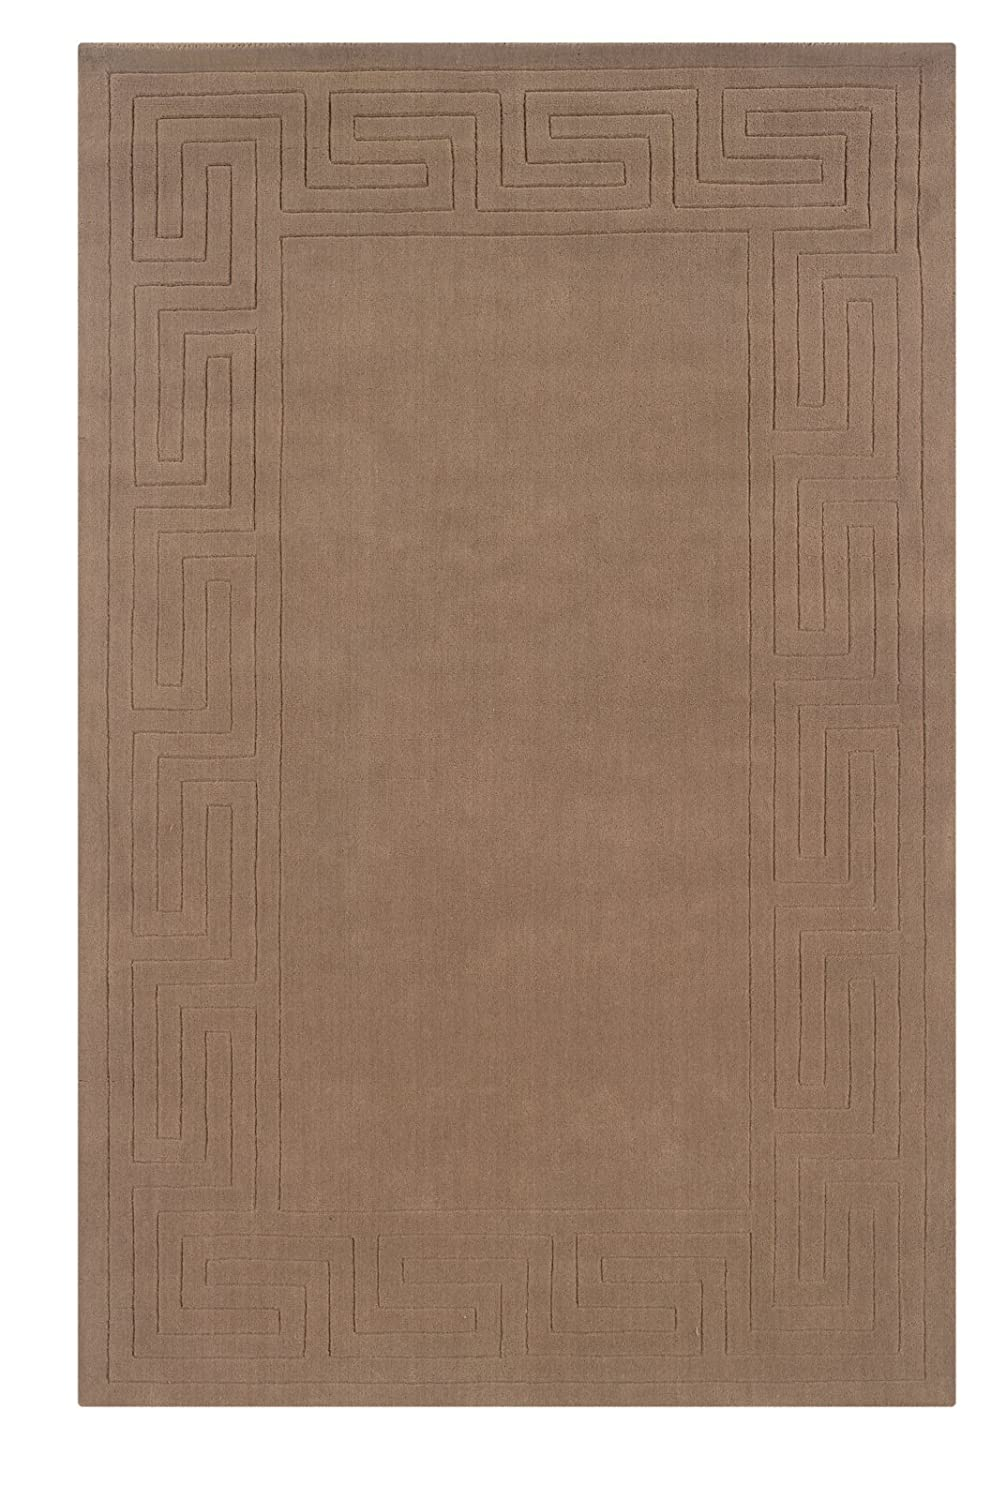 Pasargad Carpets 39218 Modern Collection Lambs Wool Hand-Loomed Solid Area Rug 6 x 9